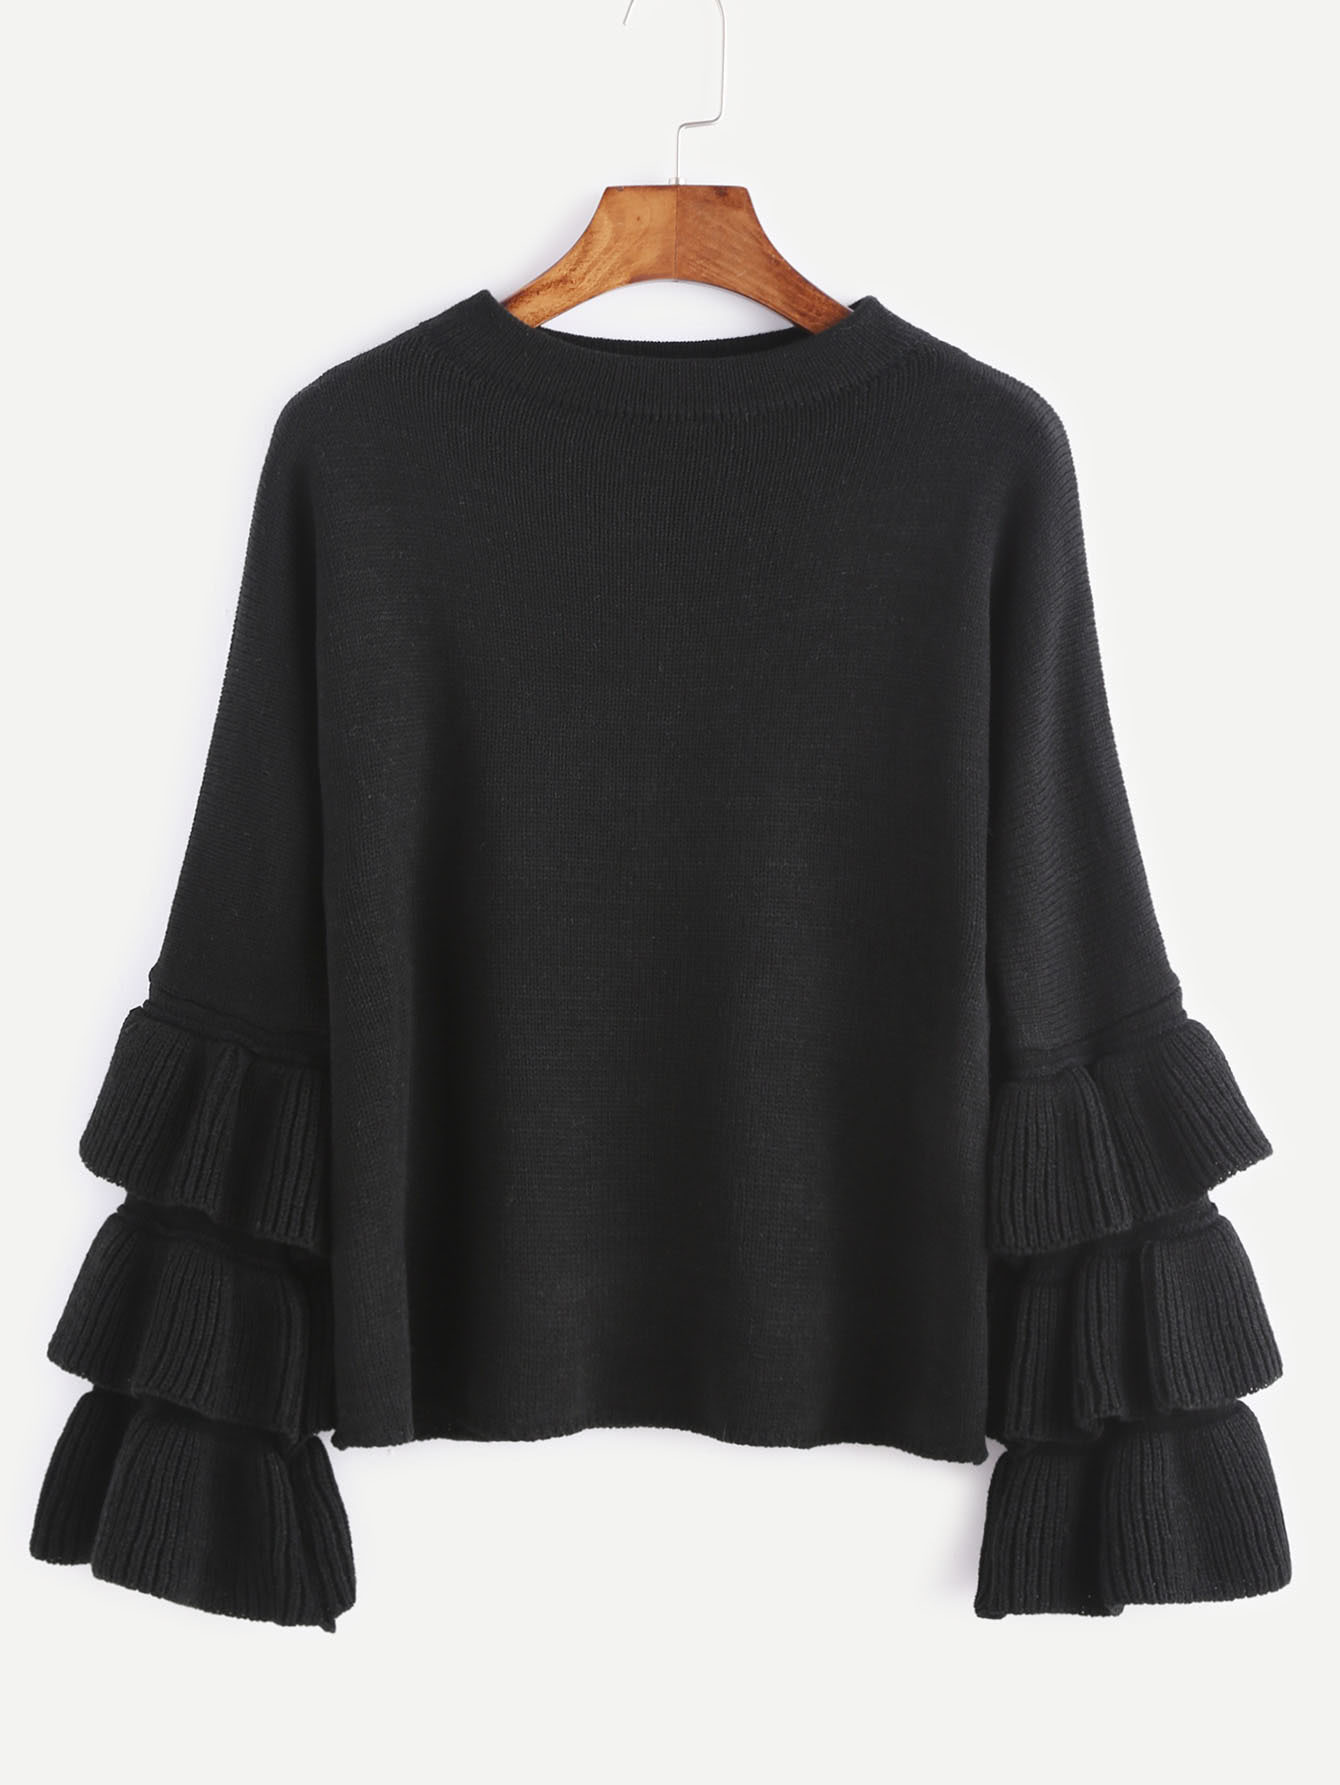 Black Layered Ruffle Sleeve Pullover Sweater -SheIn(Sheinside)